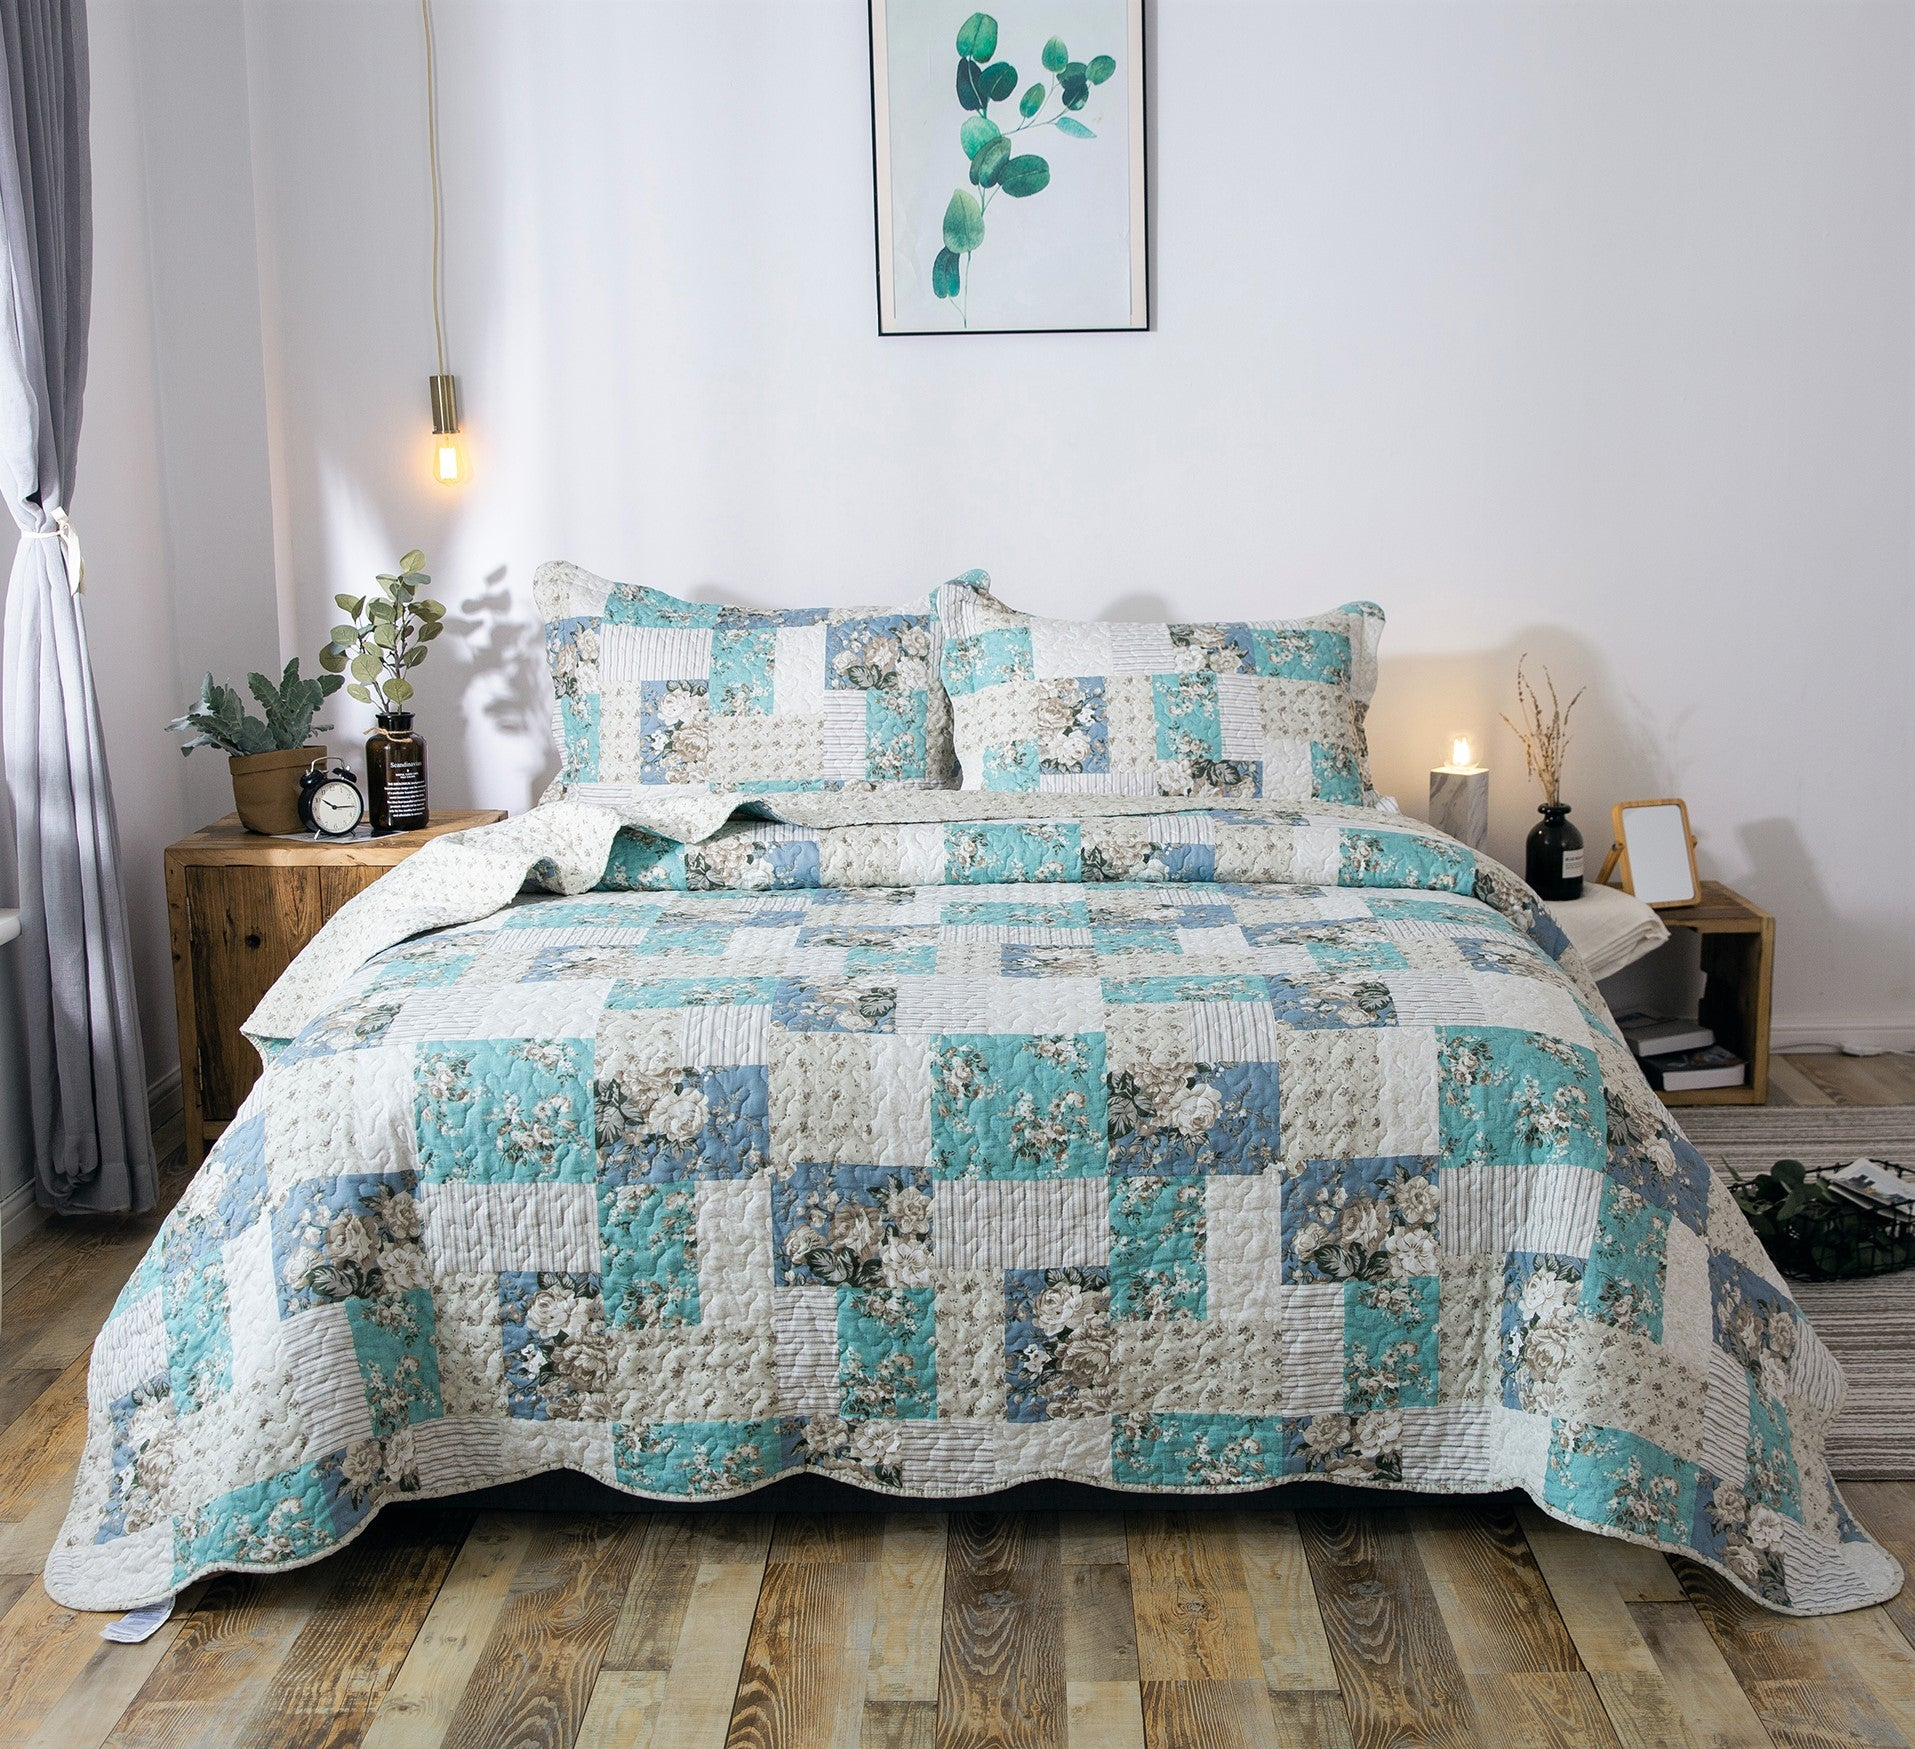 Kasentex Country-Chic Printed Pre-Washed Quilt Set Microfiber Fabric. Aqua Green